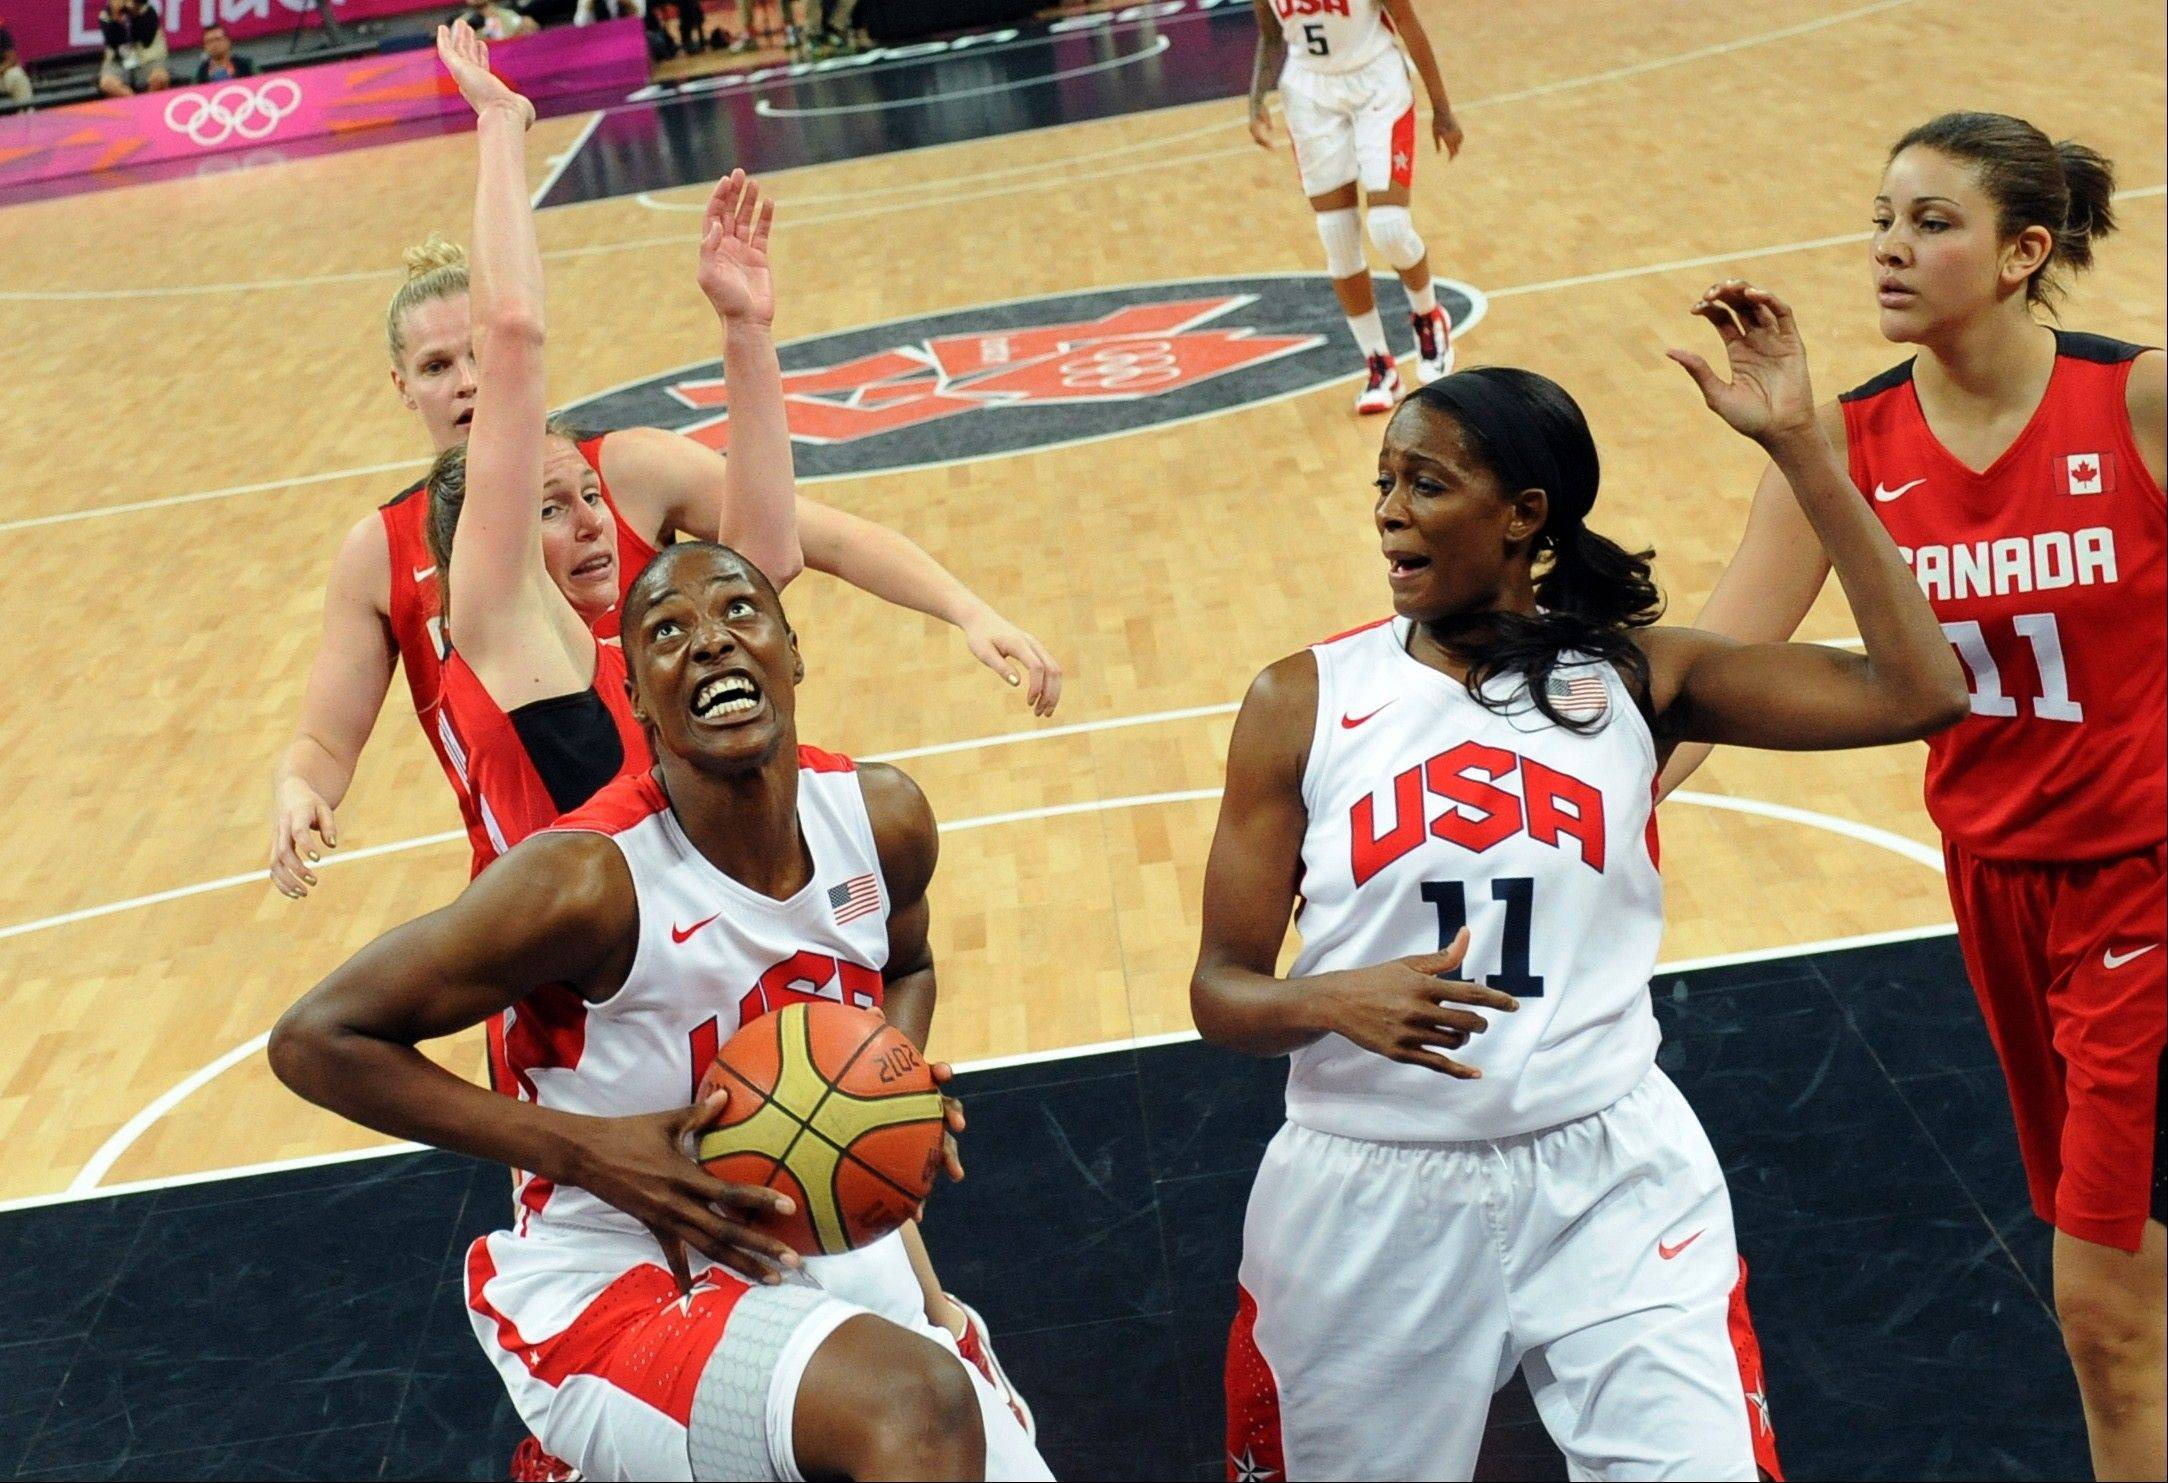 United States' center Sylvia Fowles, left, goes for a basket during a women's quarterfinal basketball match against Canada at the 2012 Summer Olympics on Tuesday, Aug. 7, 2012, in London.